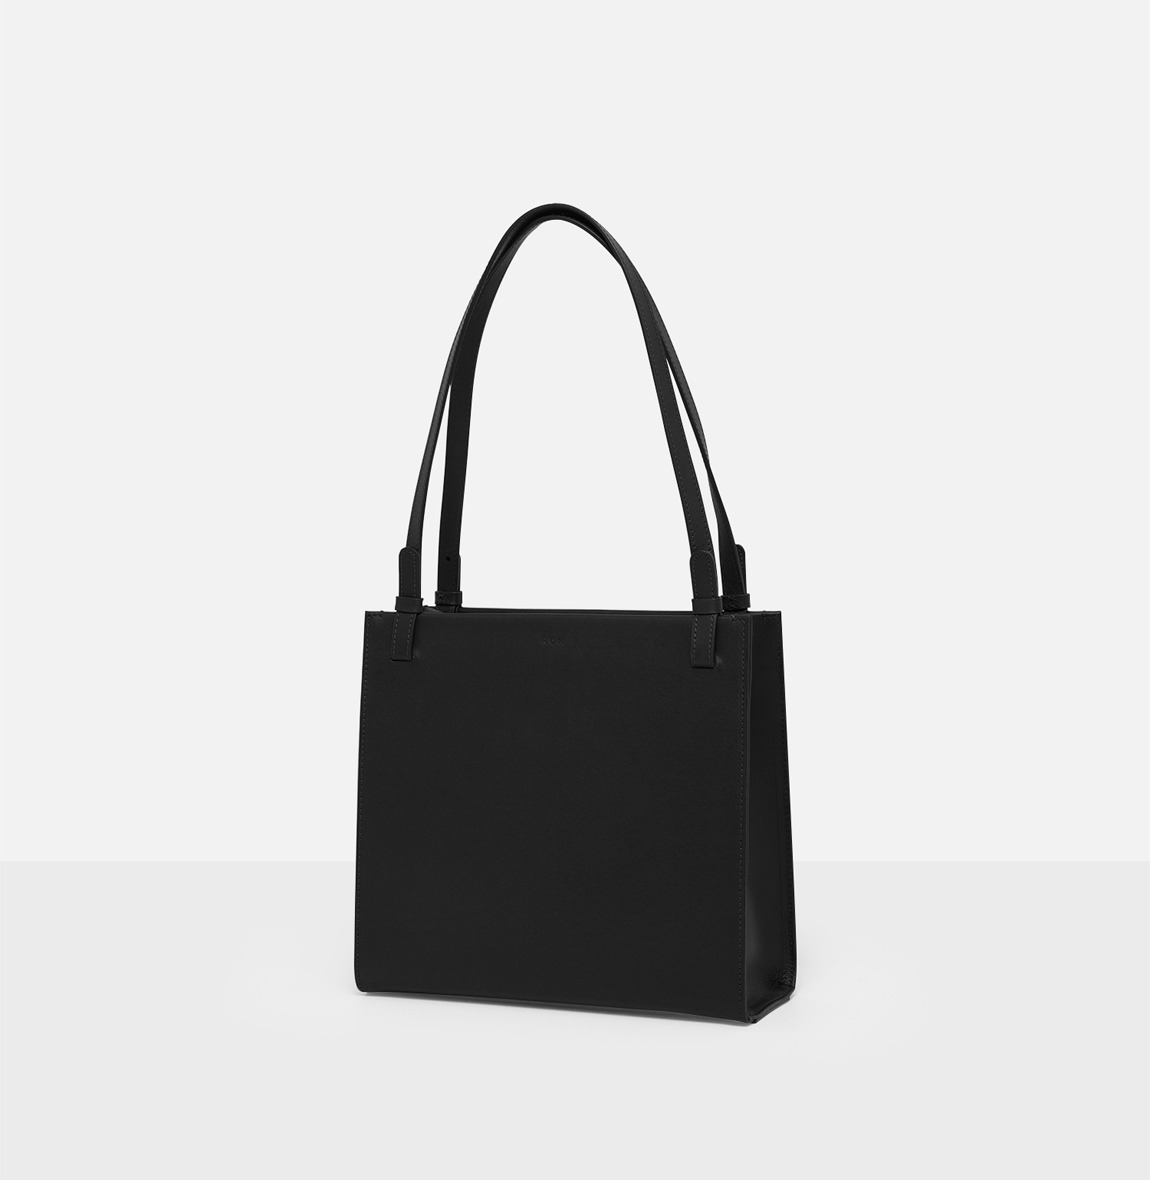 ROH Ladder tote bag Black